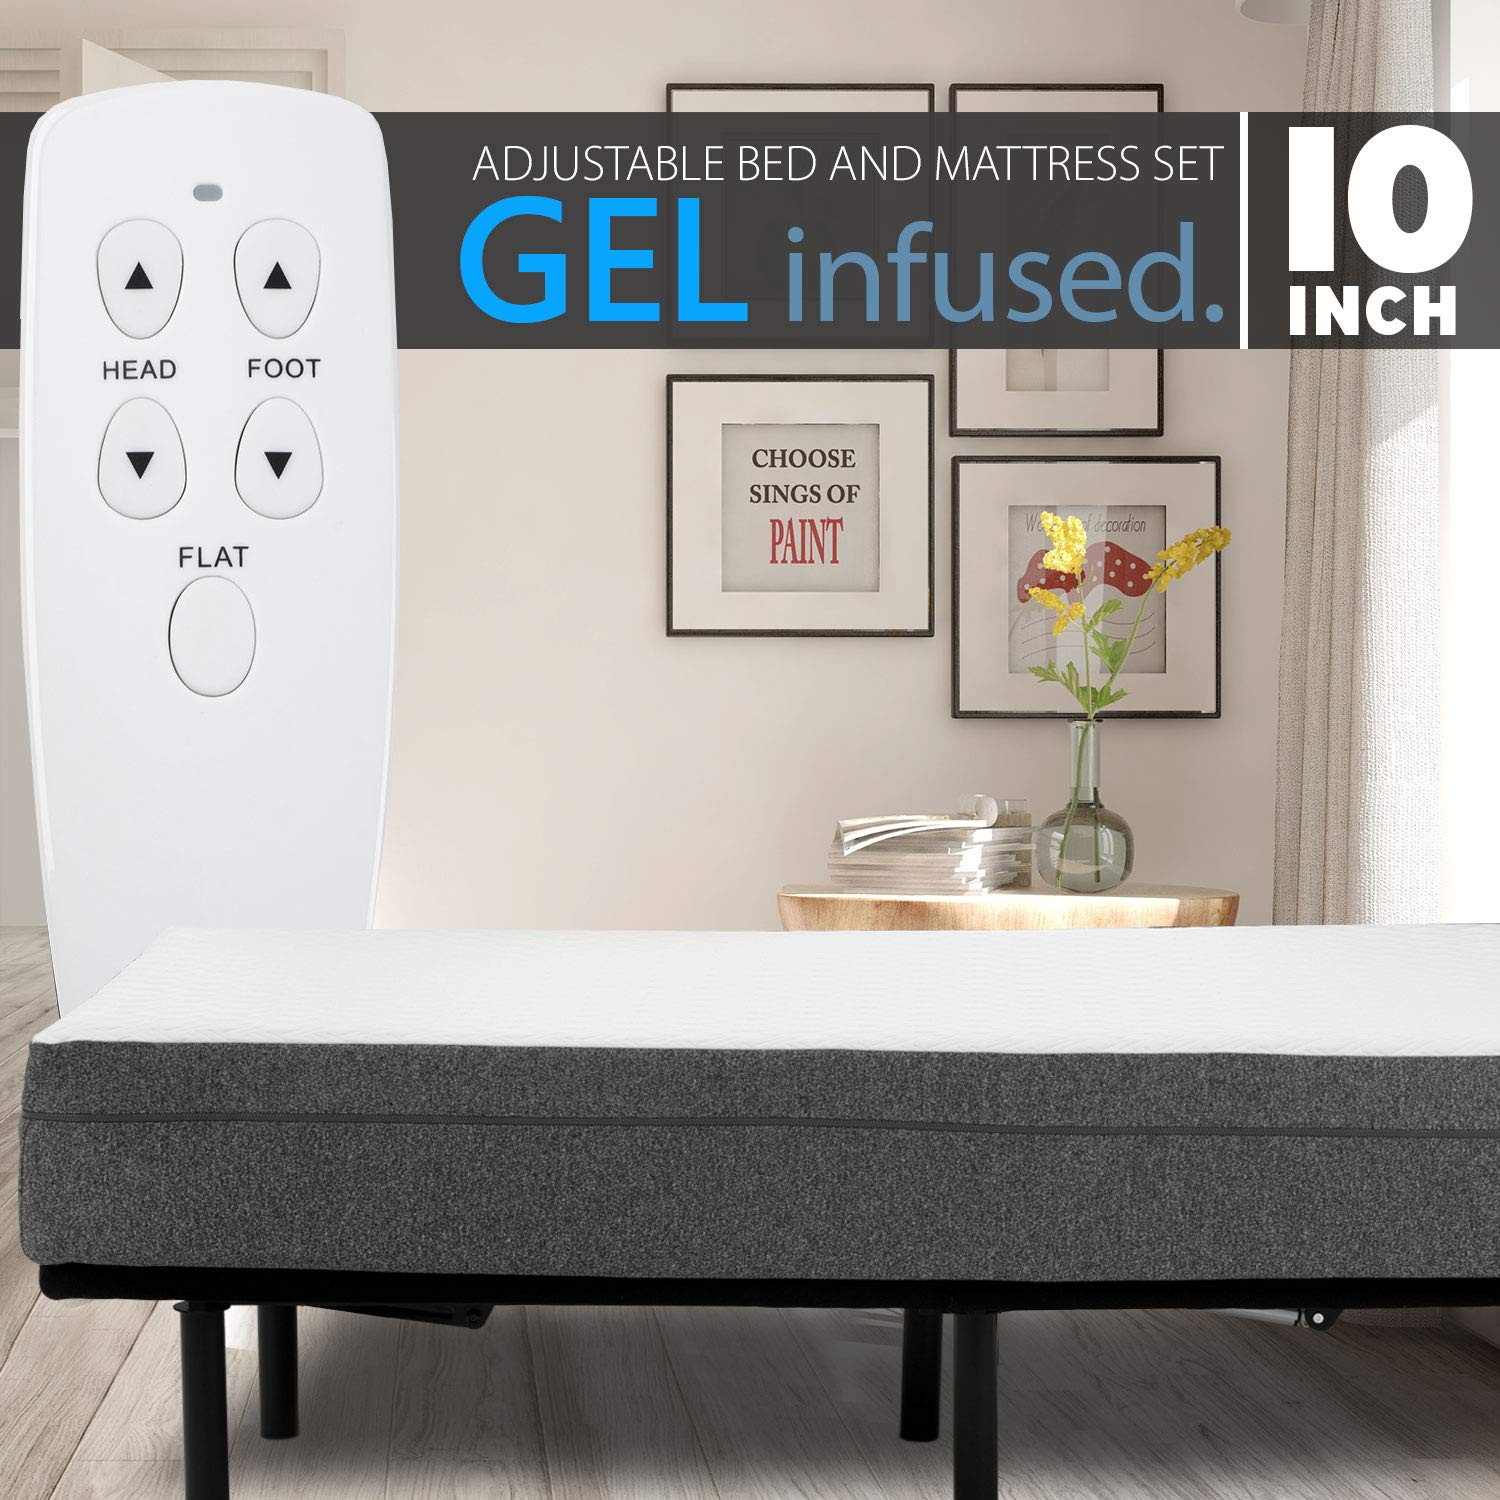 10 Gel Infused Medium Firm Memory Foam Mattress with Adjustable Bed Frame Combo Set Head and Foot Incline Wired Remote King